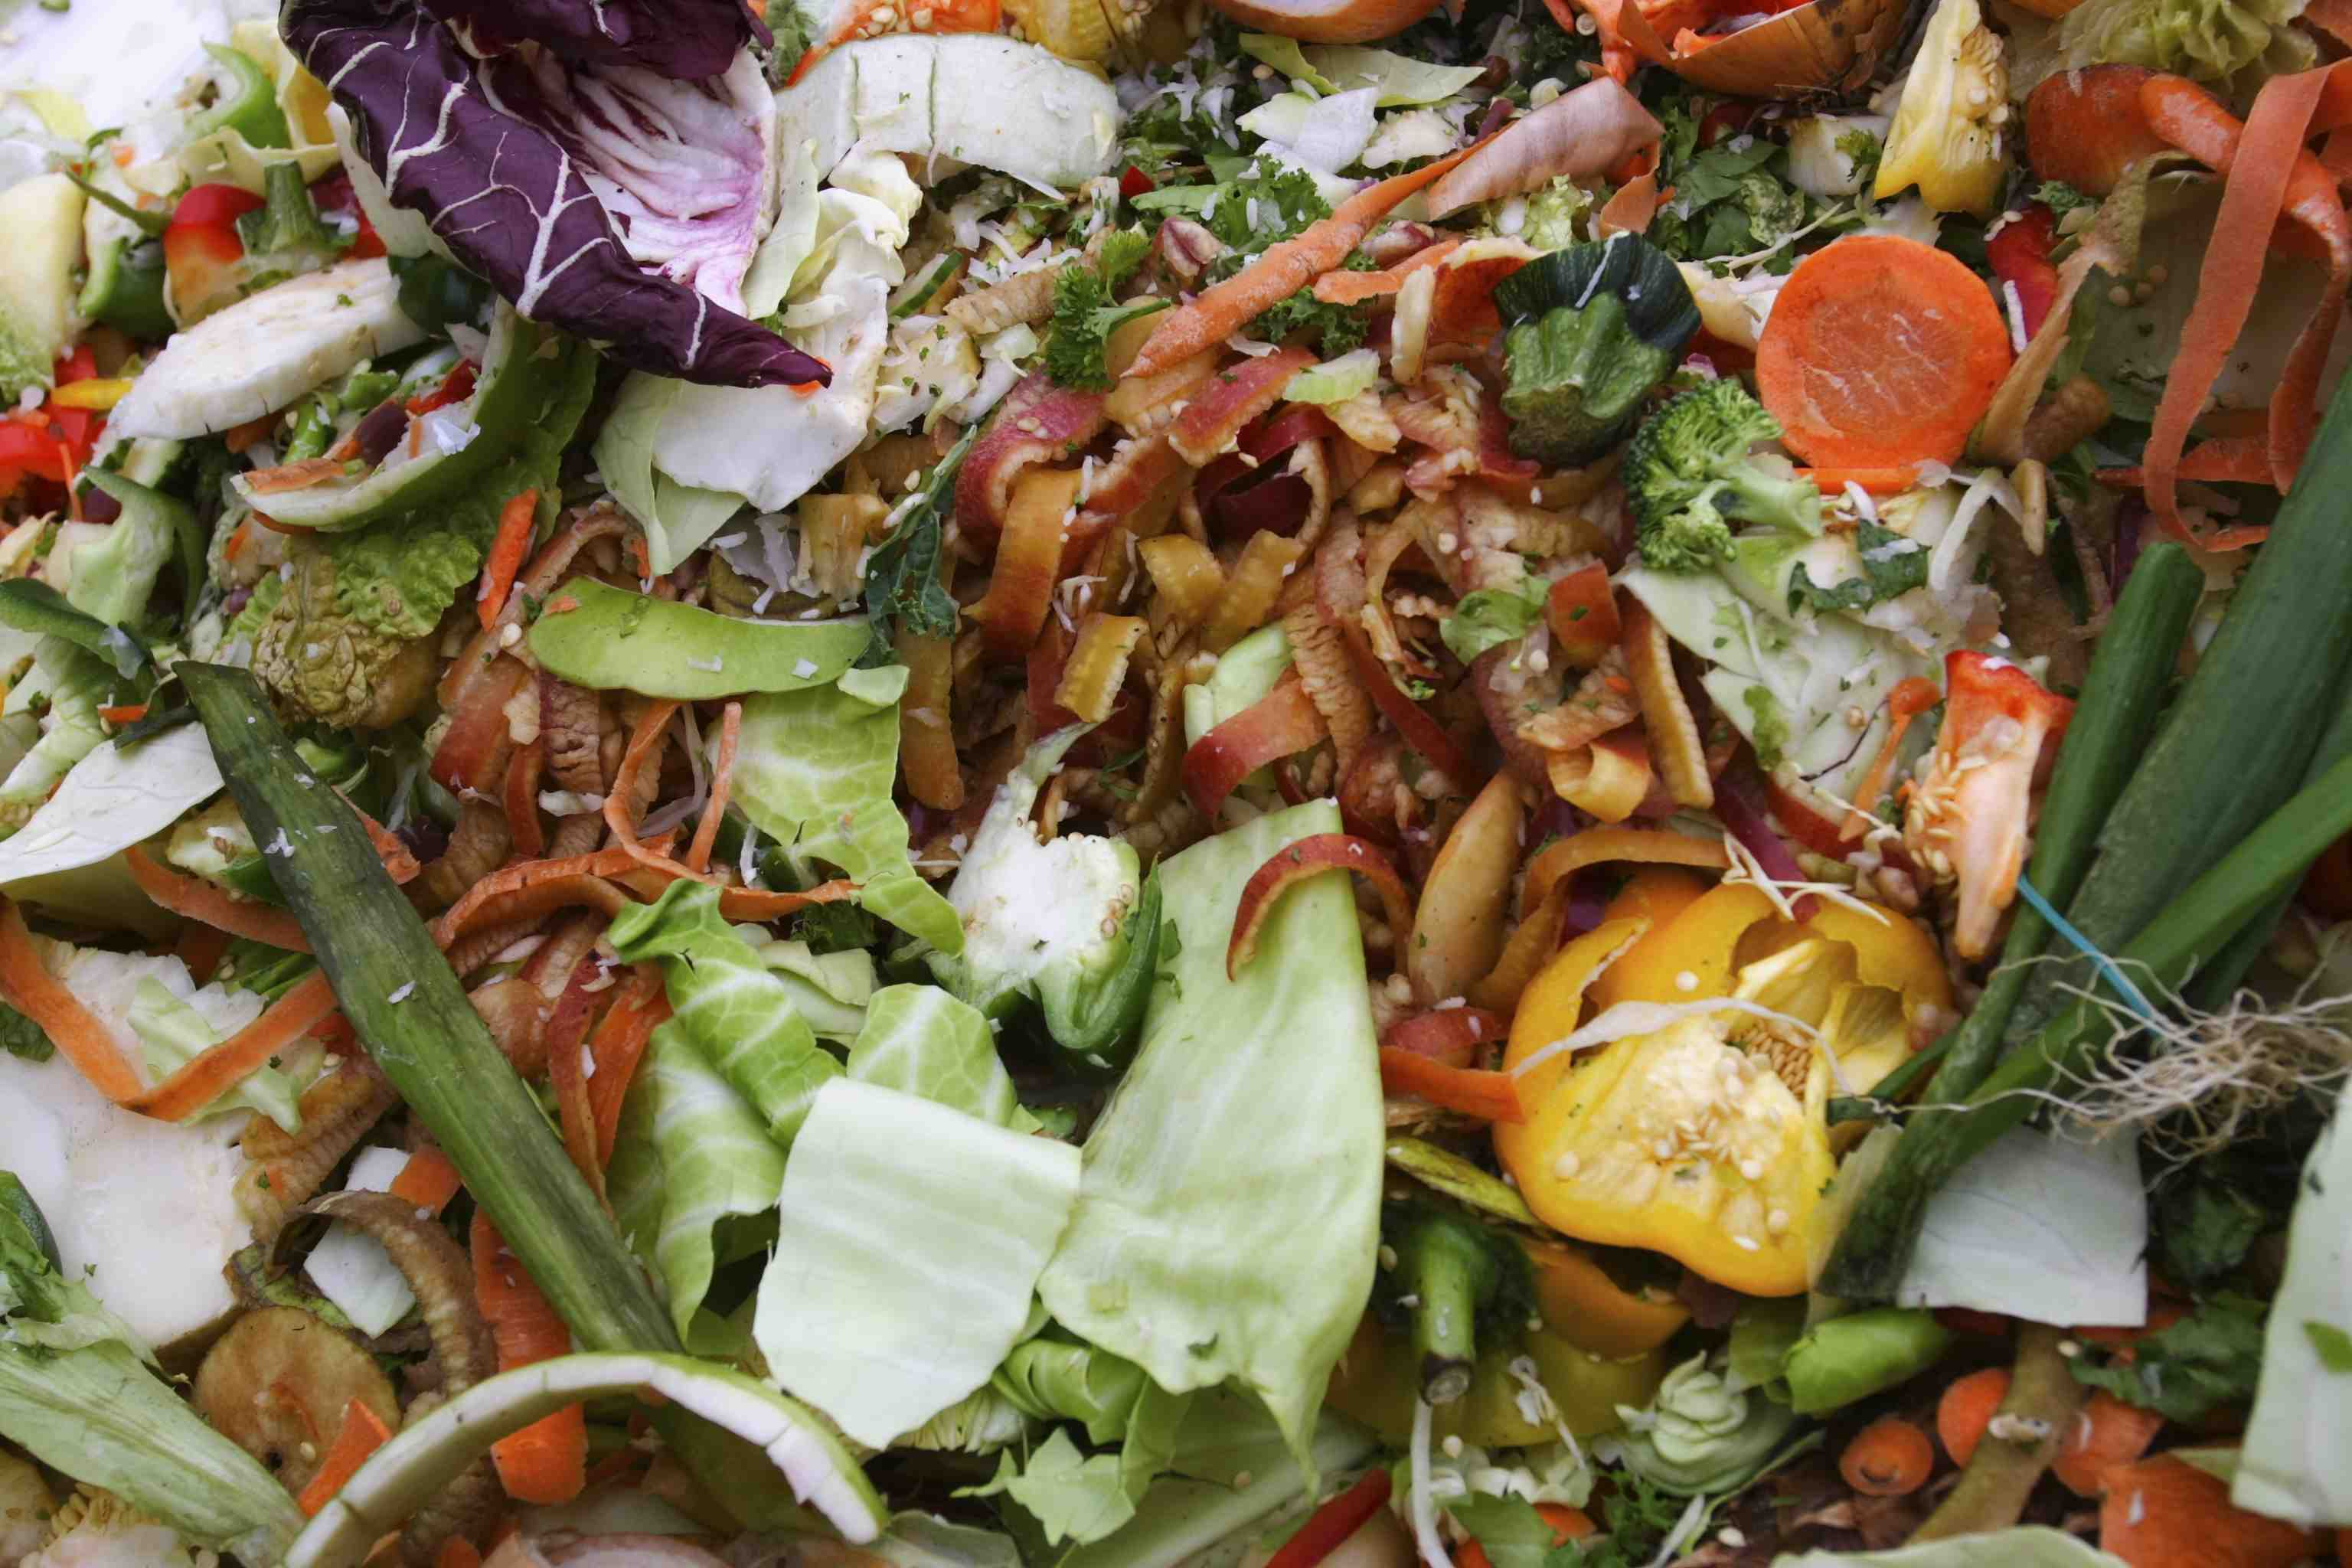 Dutch agenda against food waste aims to cut food waste by half